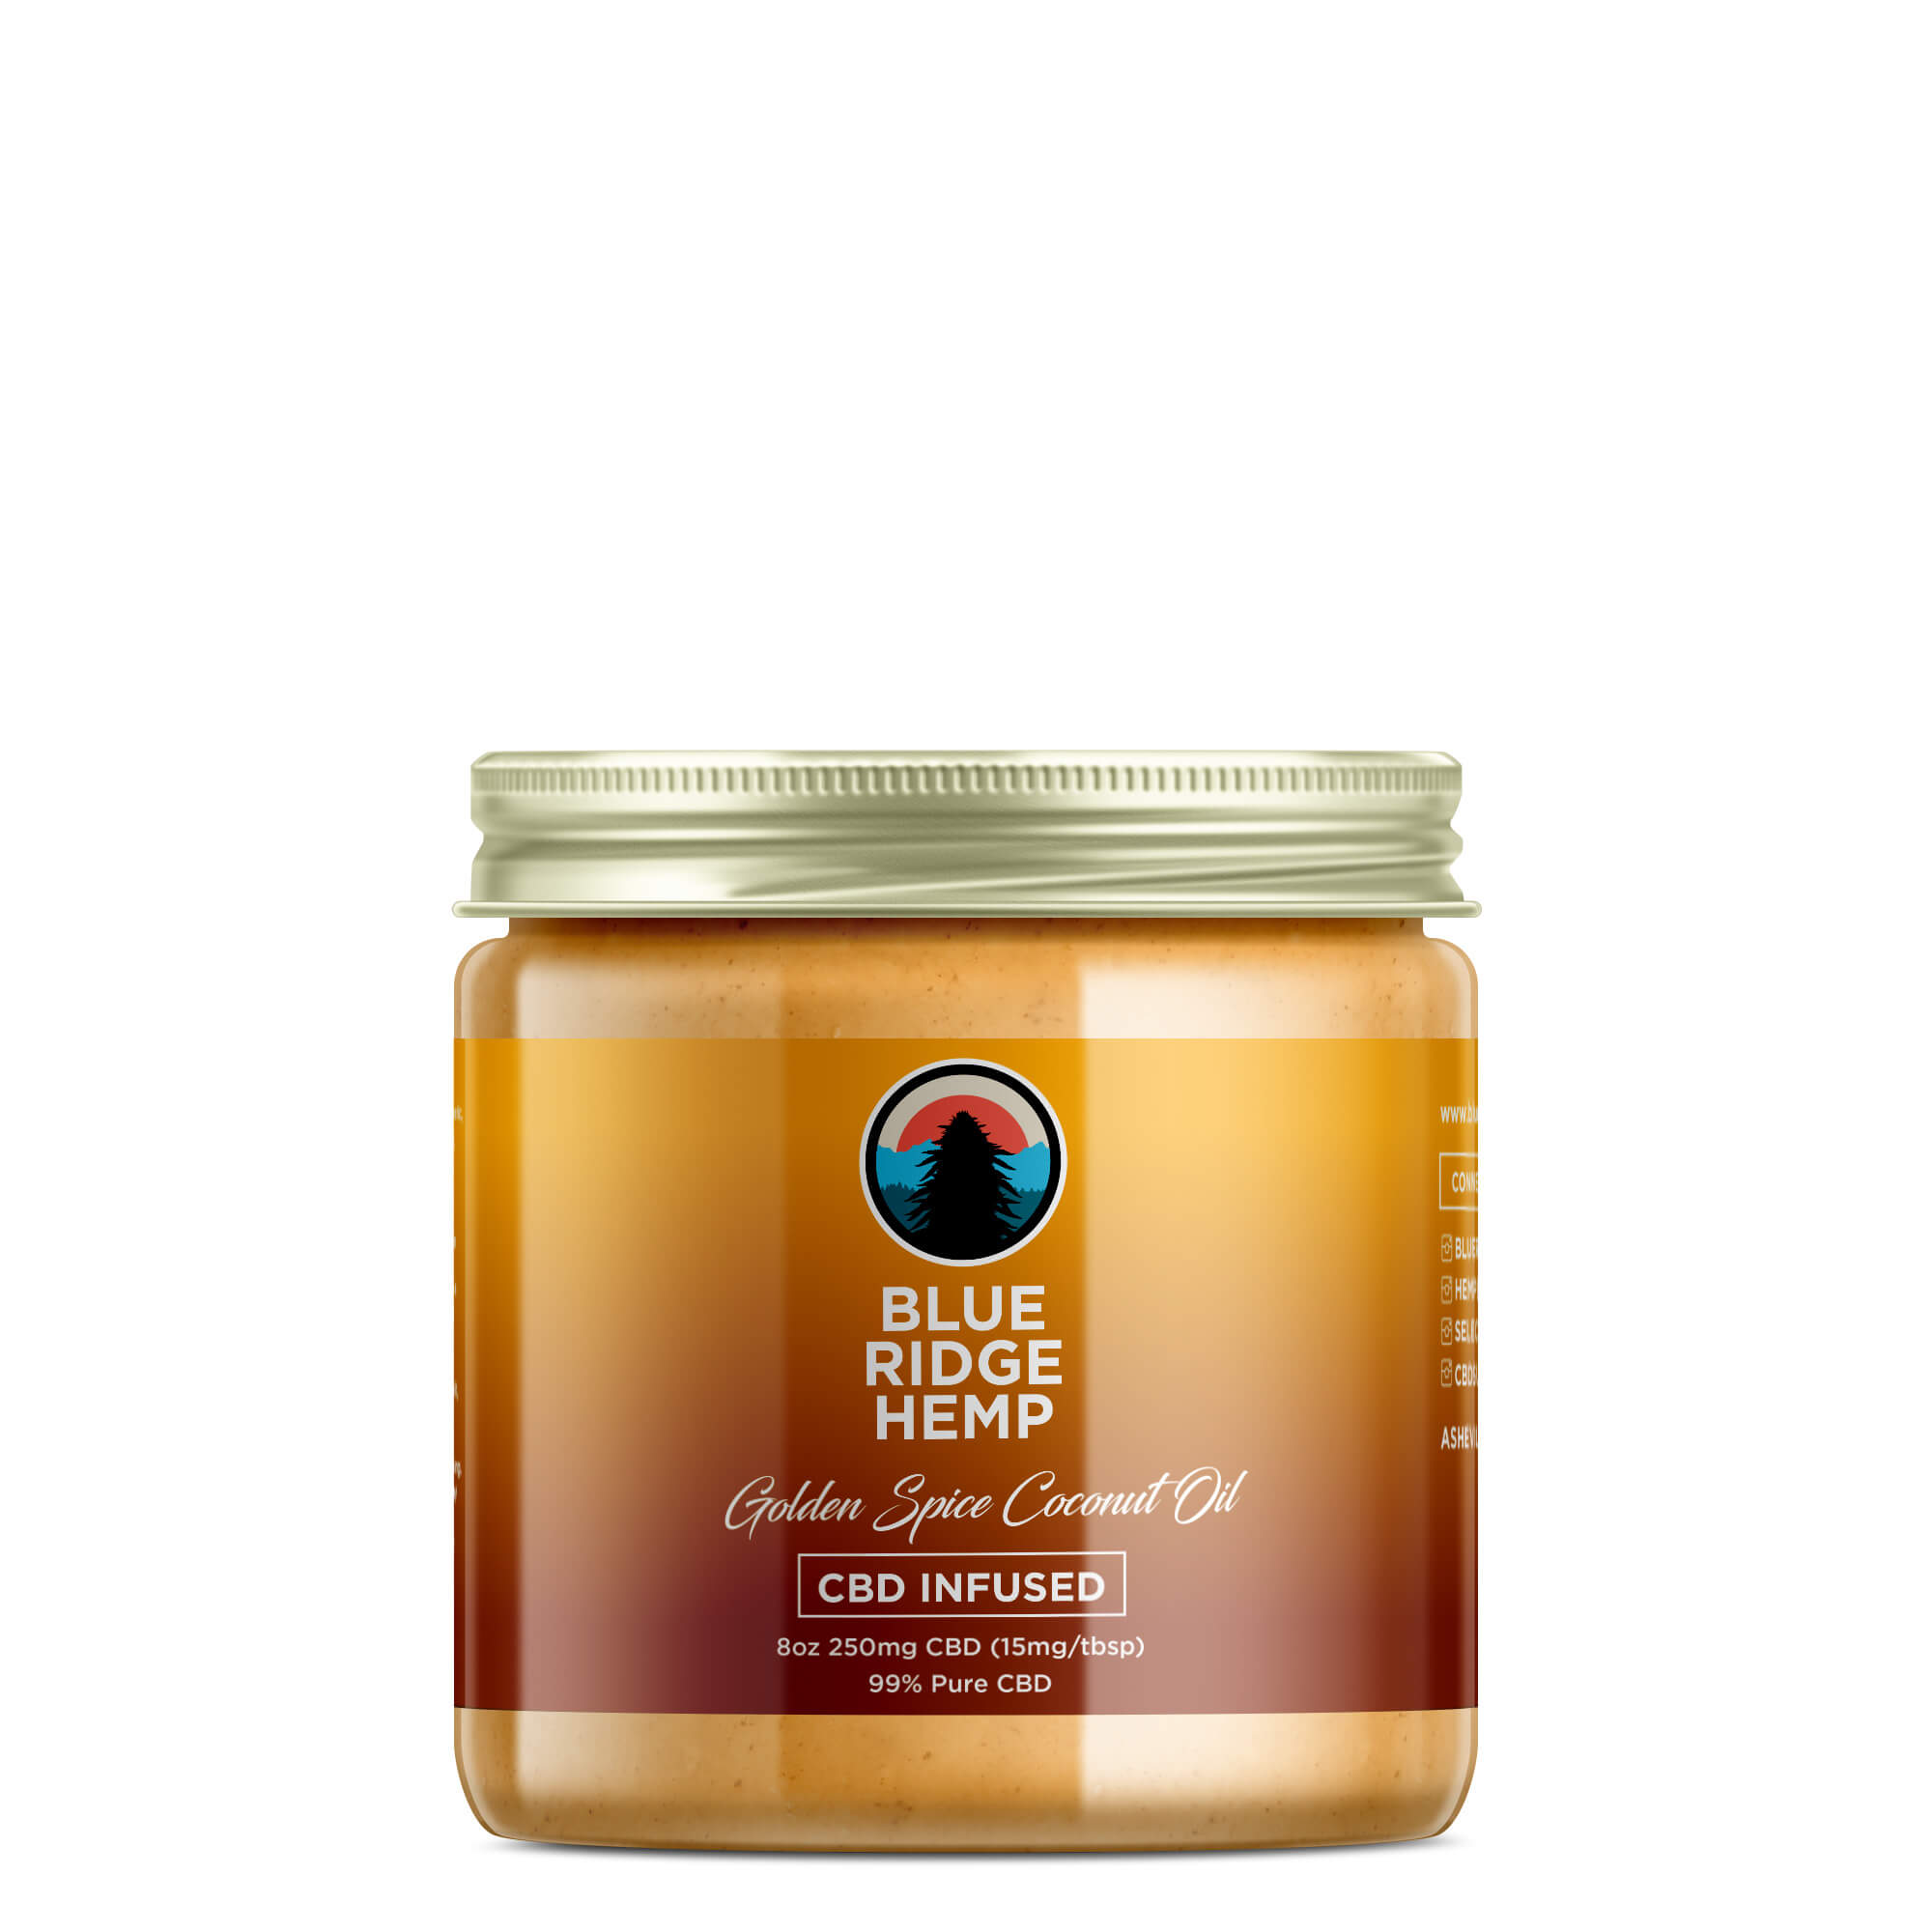 Golden Spice CBD Coconut Oil 8oz 250mg CBD